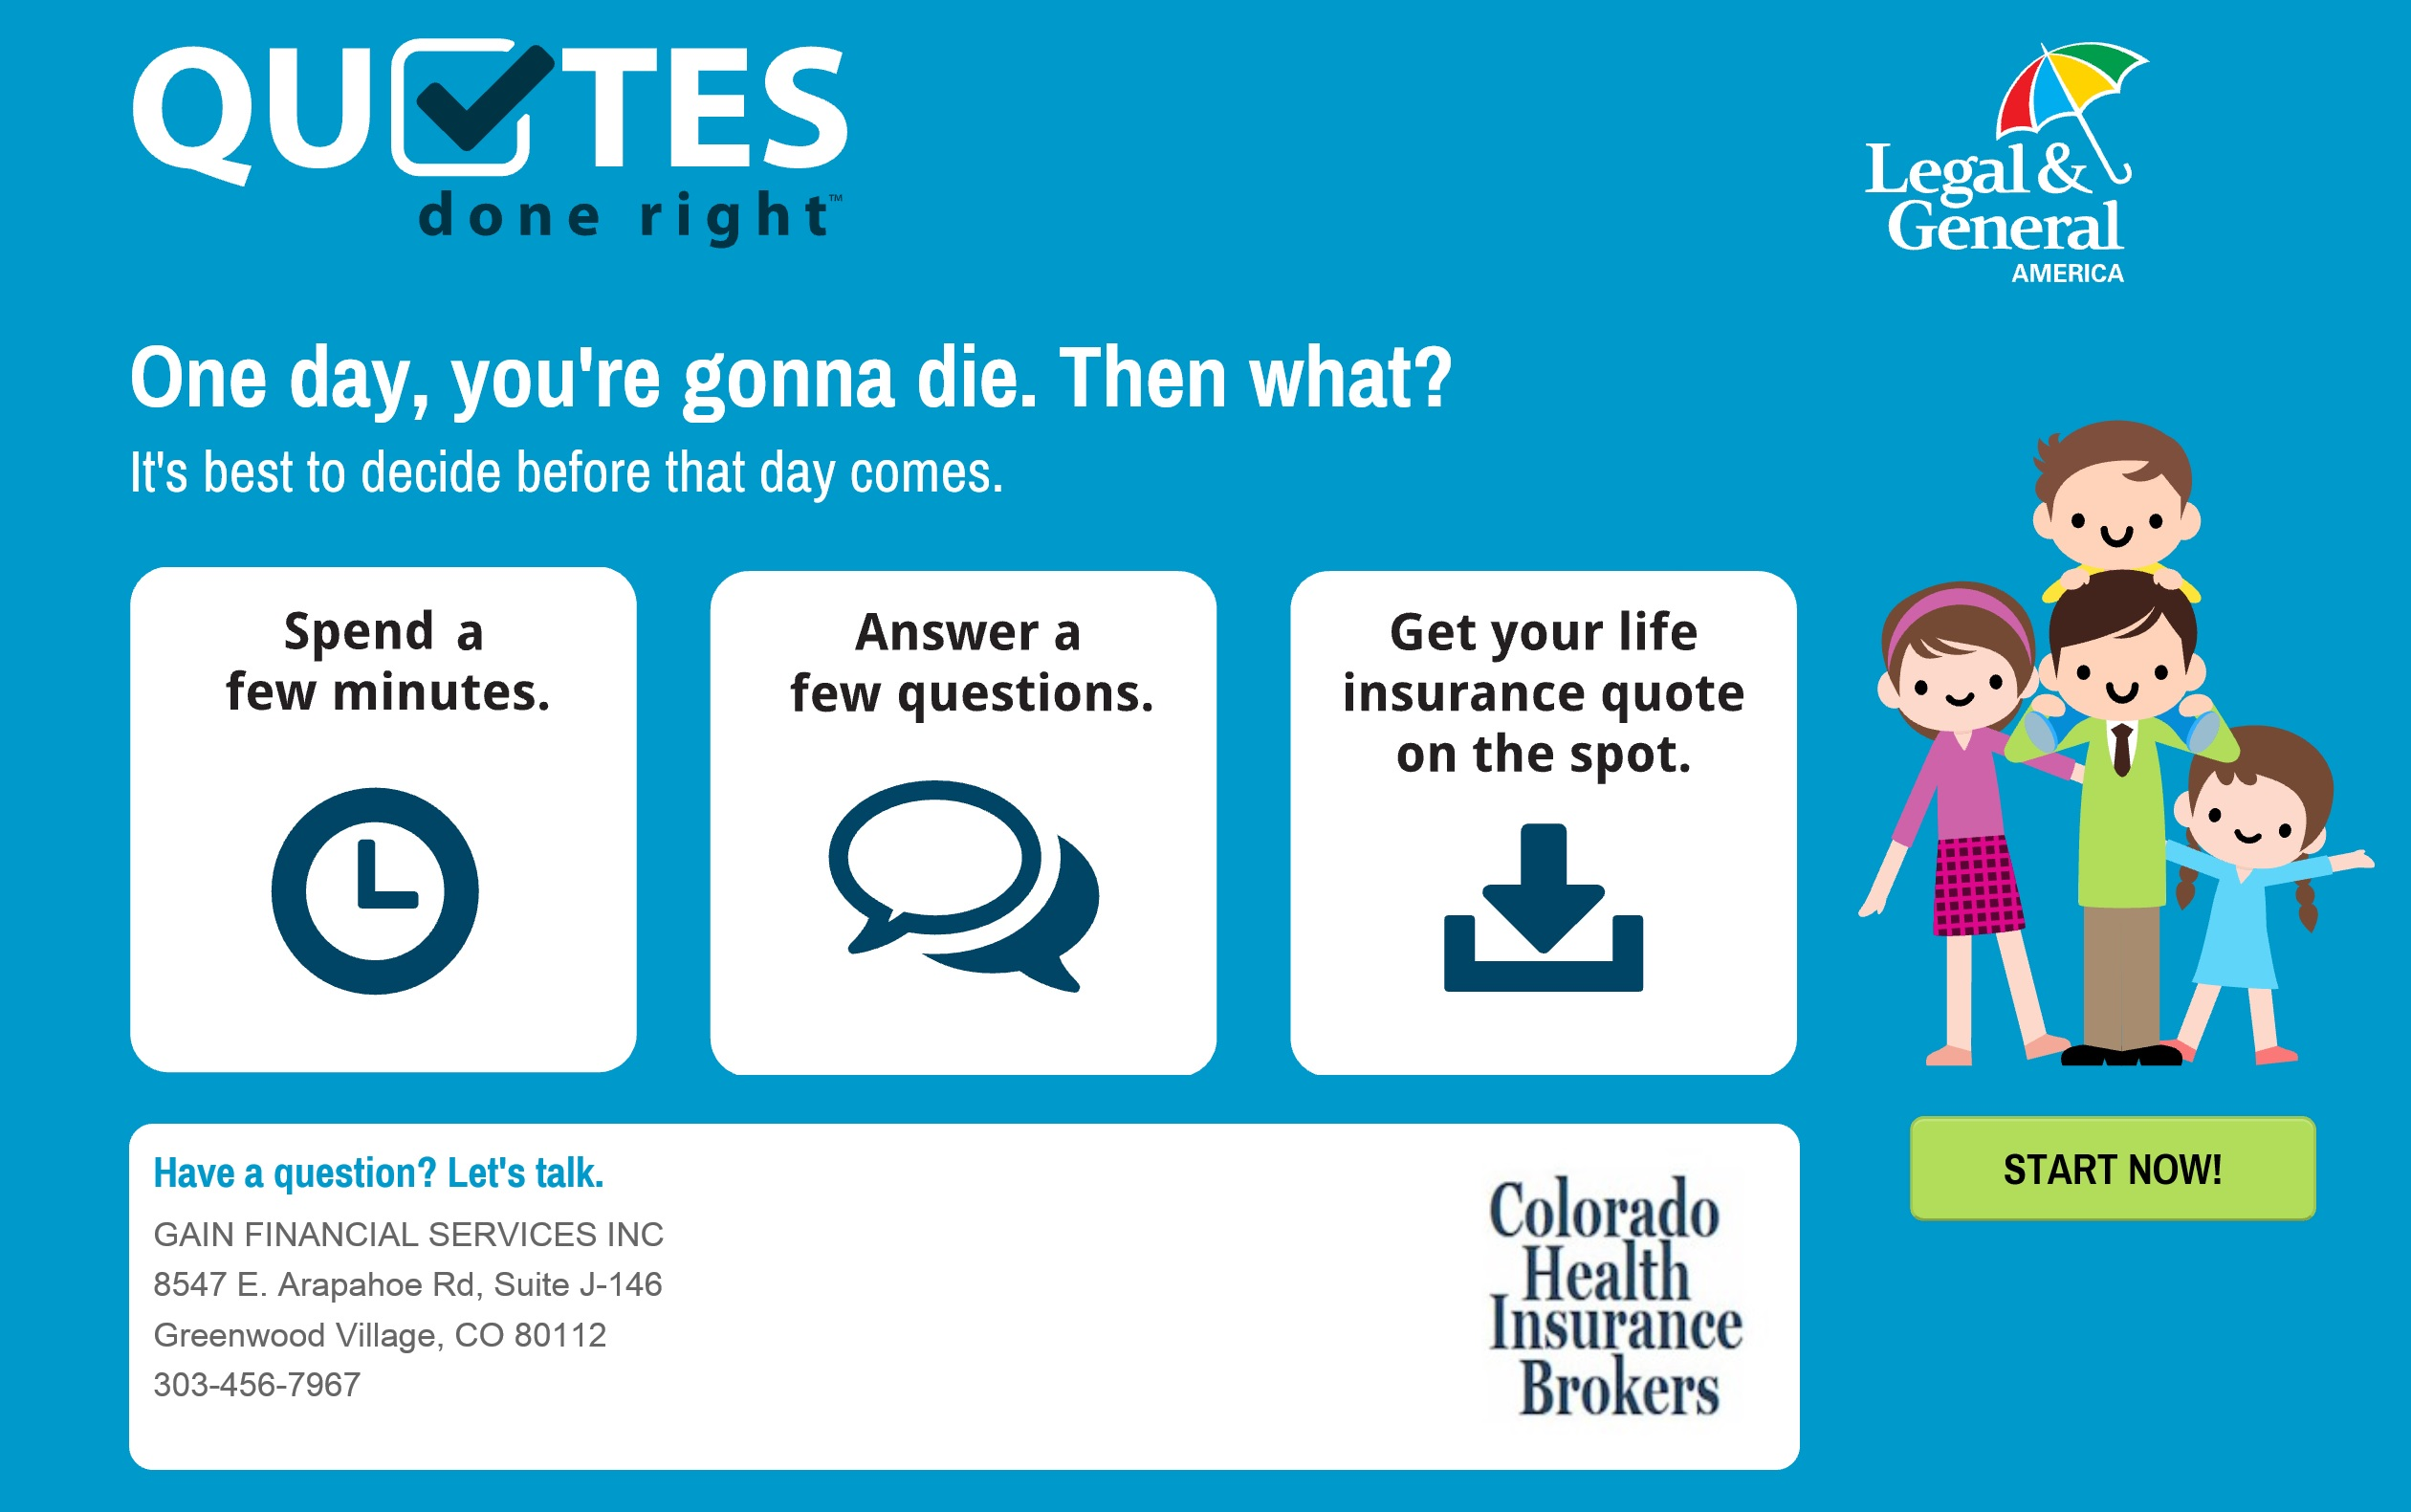 Affordable Life Insurance Quotes Online Extraordinary Colorado Health Insurance  Fast And Affordable Life Insurance